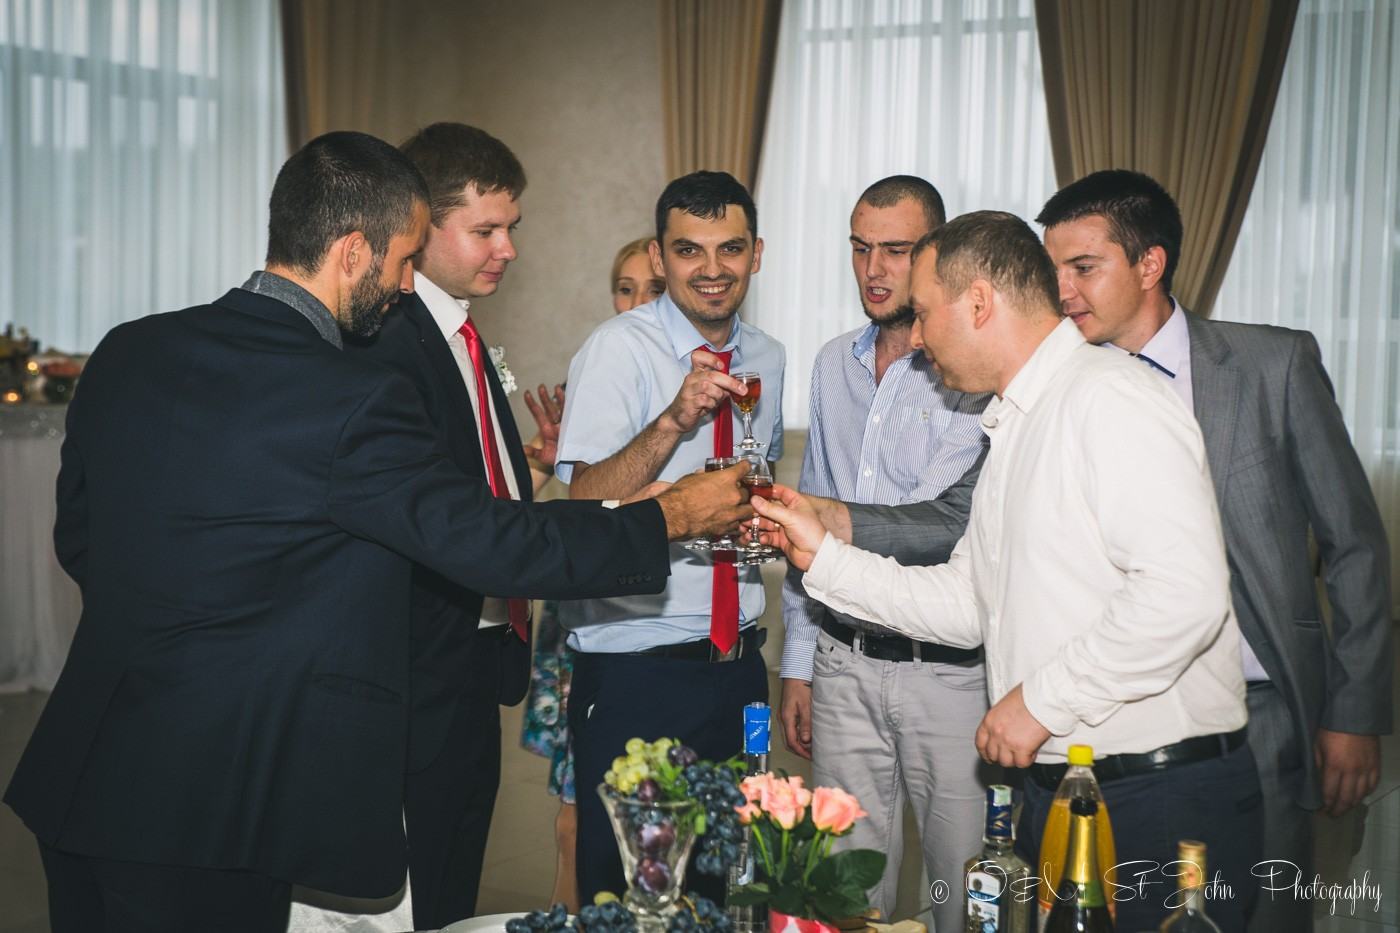 Men drinking at my cousin's wedding in Ukraine